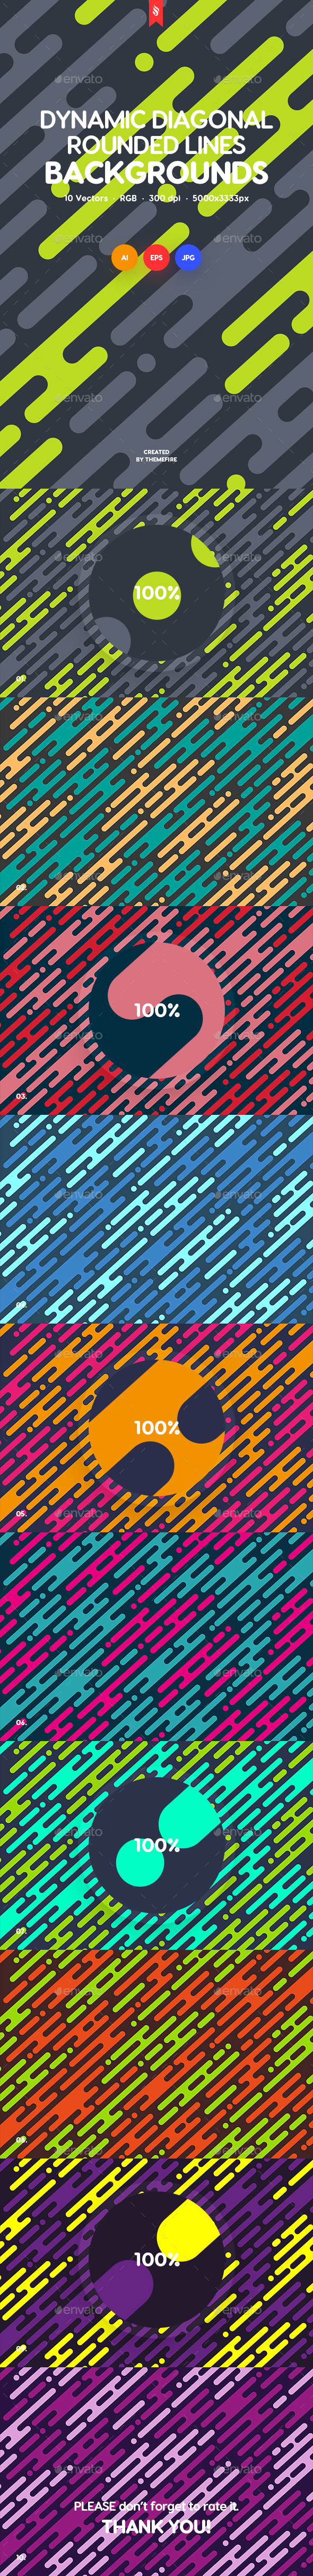 Dynamic Rounded Lines in Diagonal Rhythm Backgrounds - Backgrounds Graphics